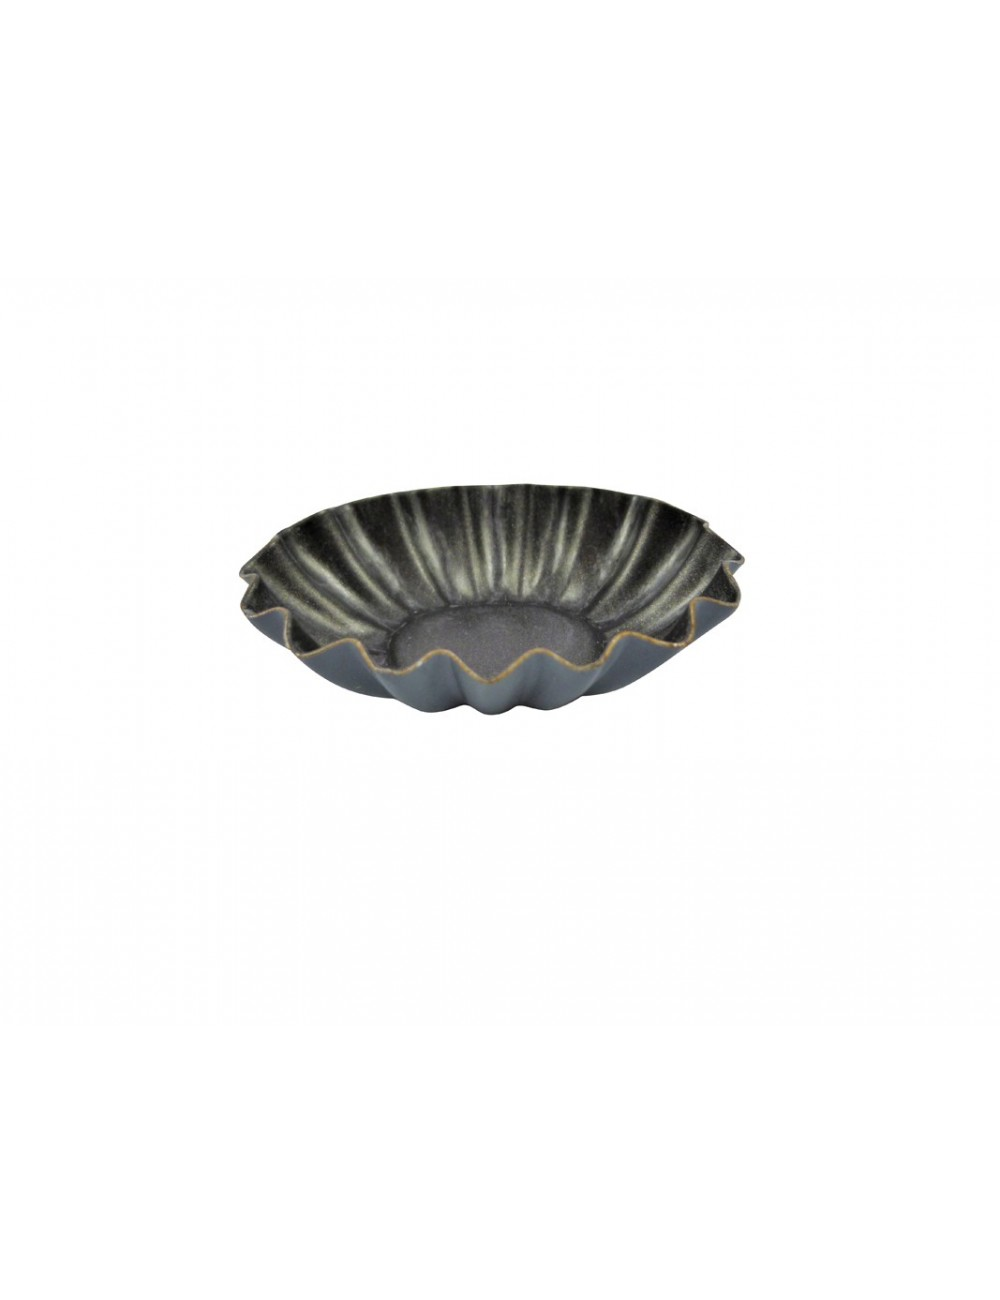 FLUTED OVAL PETIT FOUR